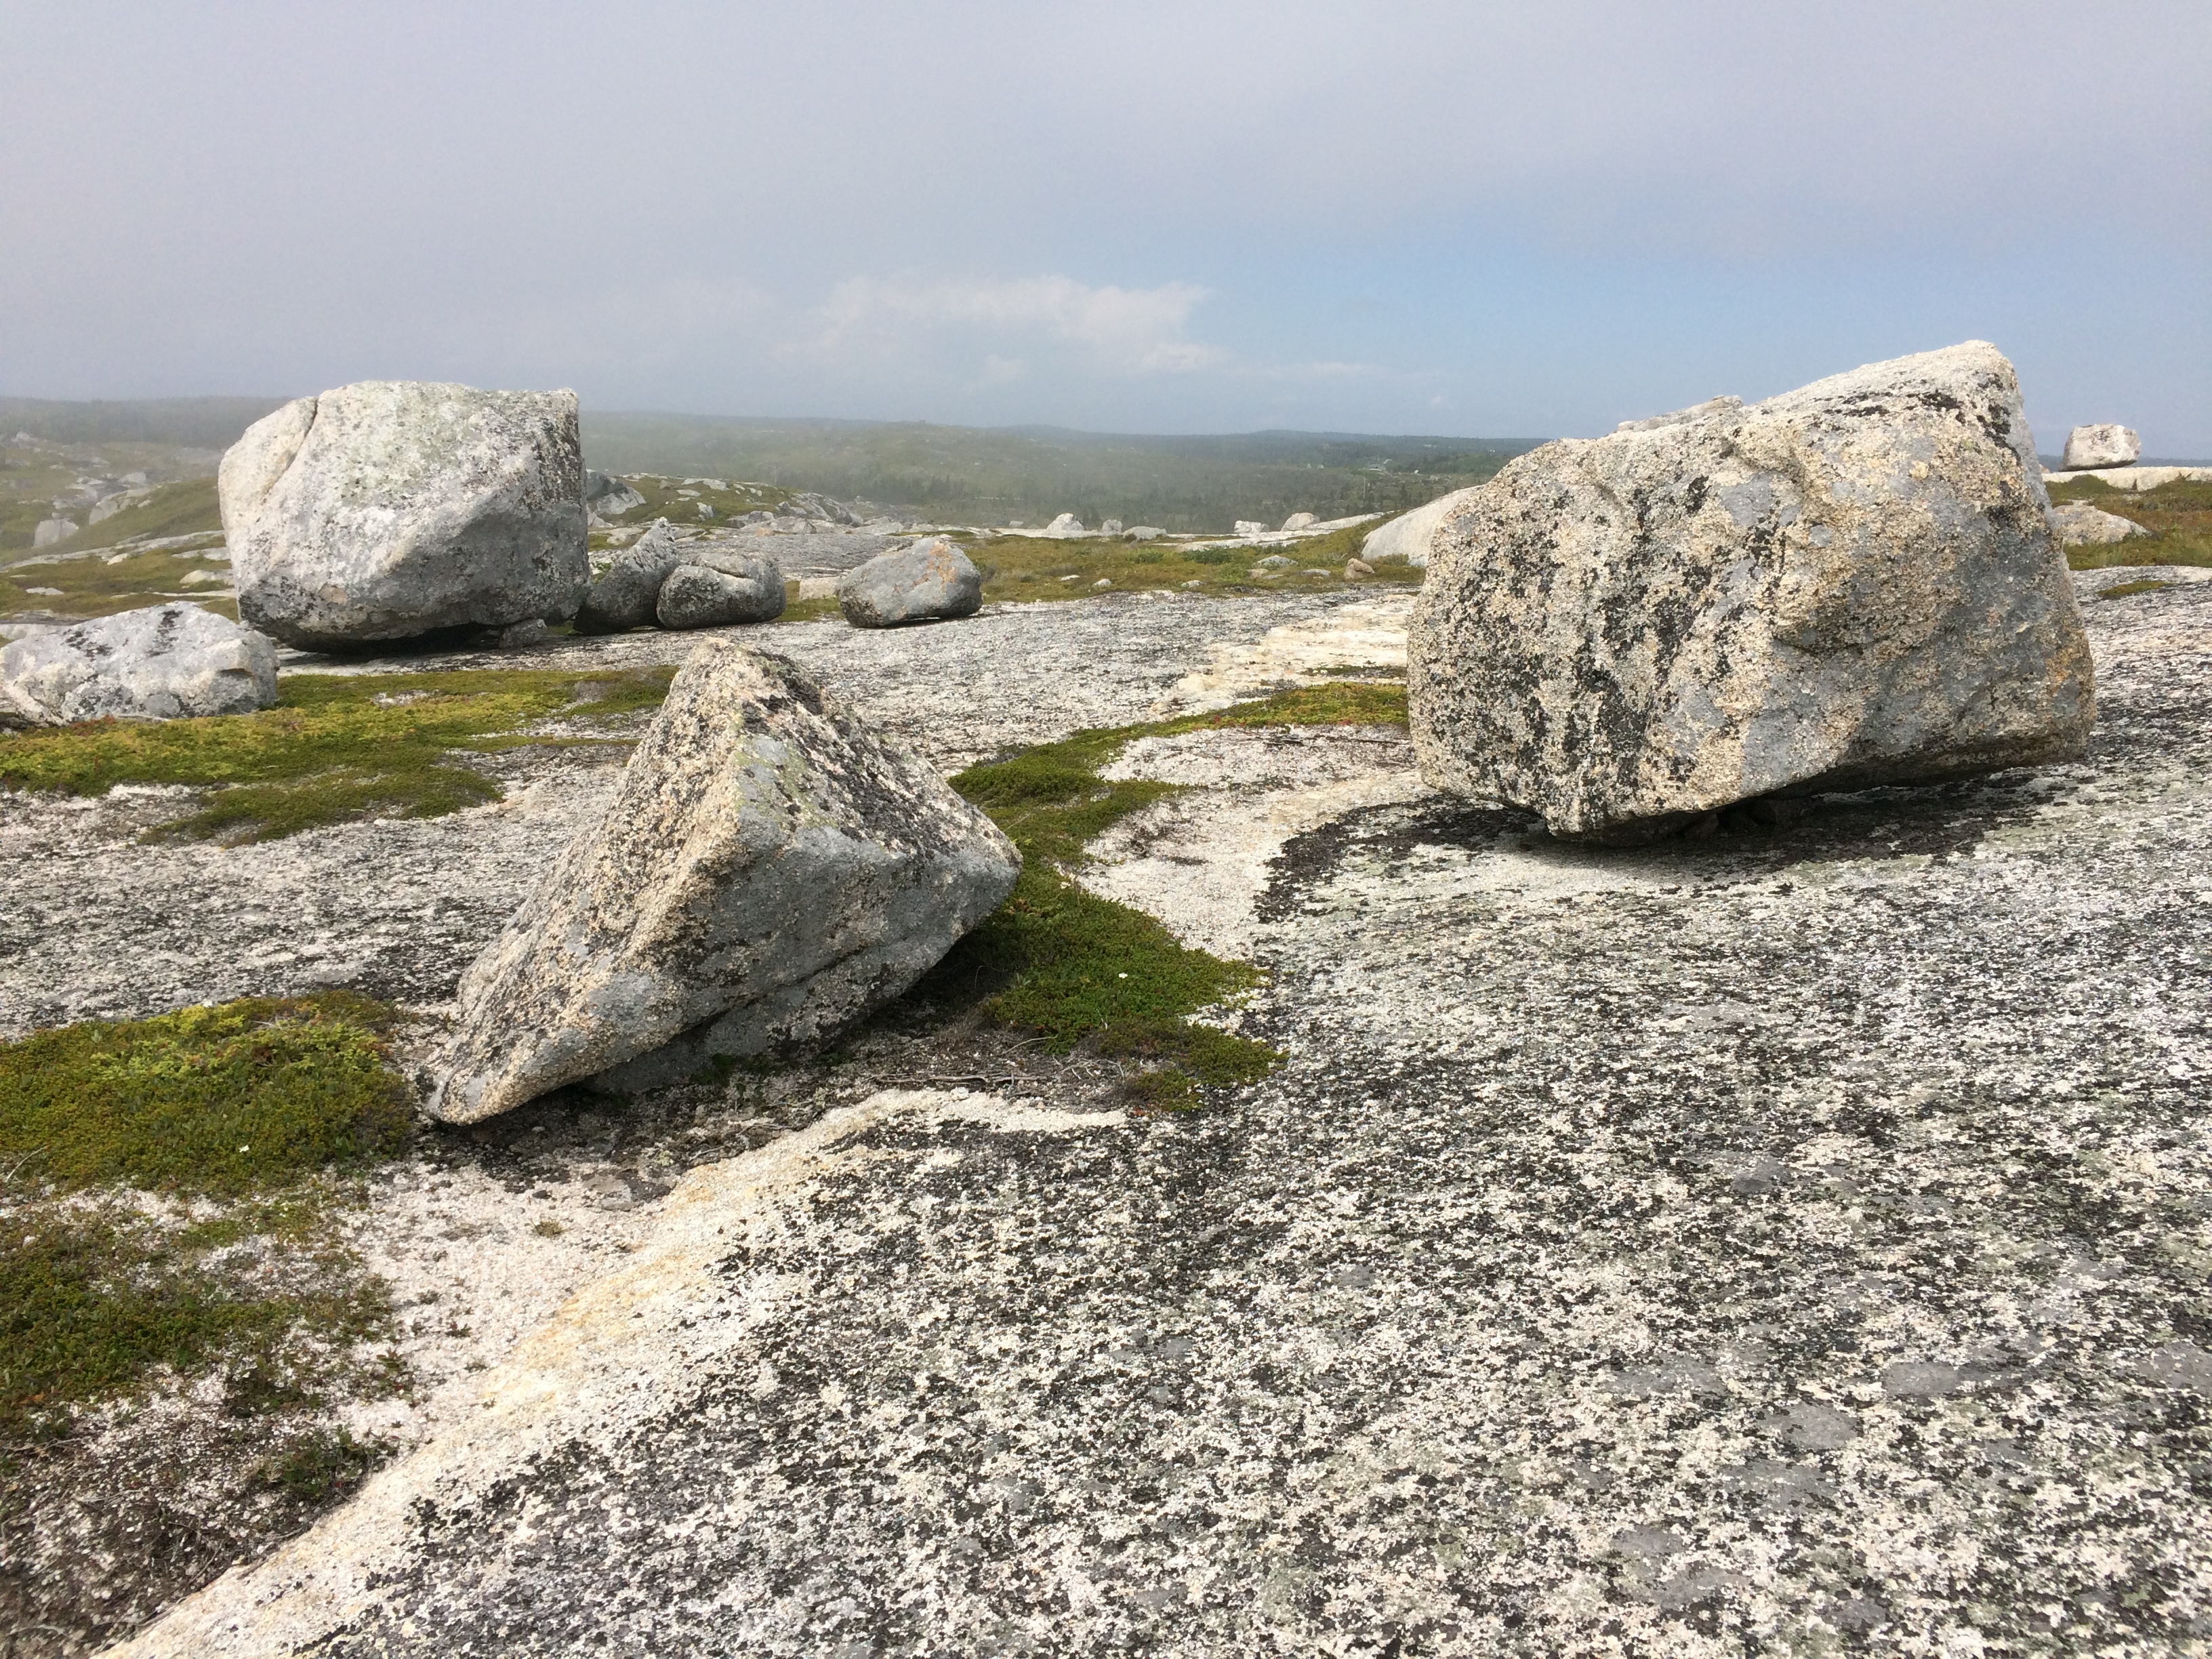 Boulders left behind by ancient glaciers at Peggy's Cove Preservation Area